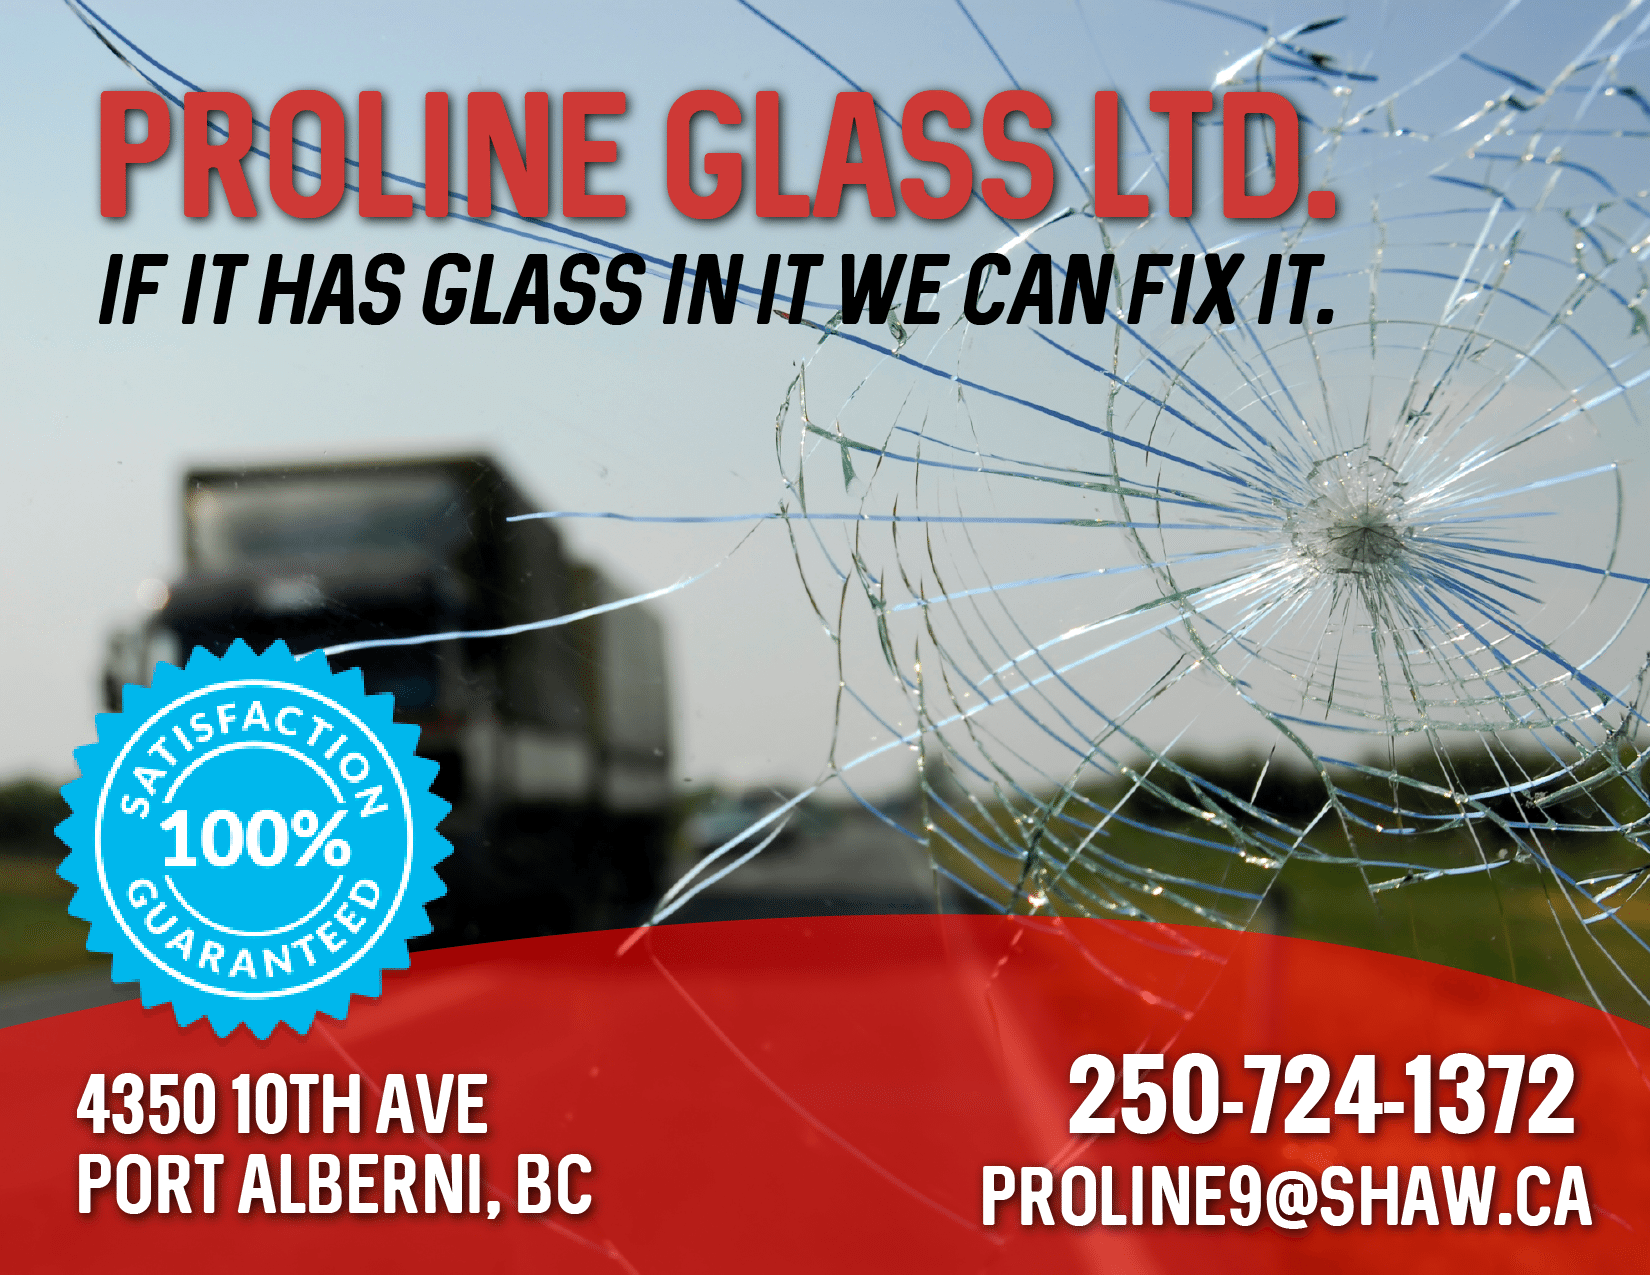 Proline Glass